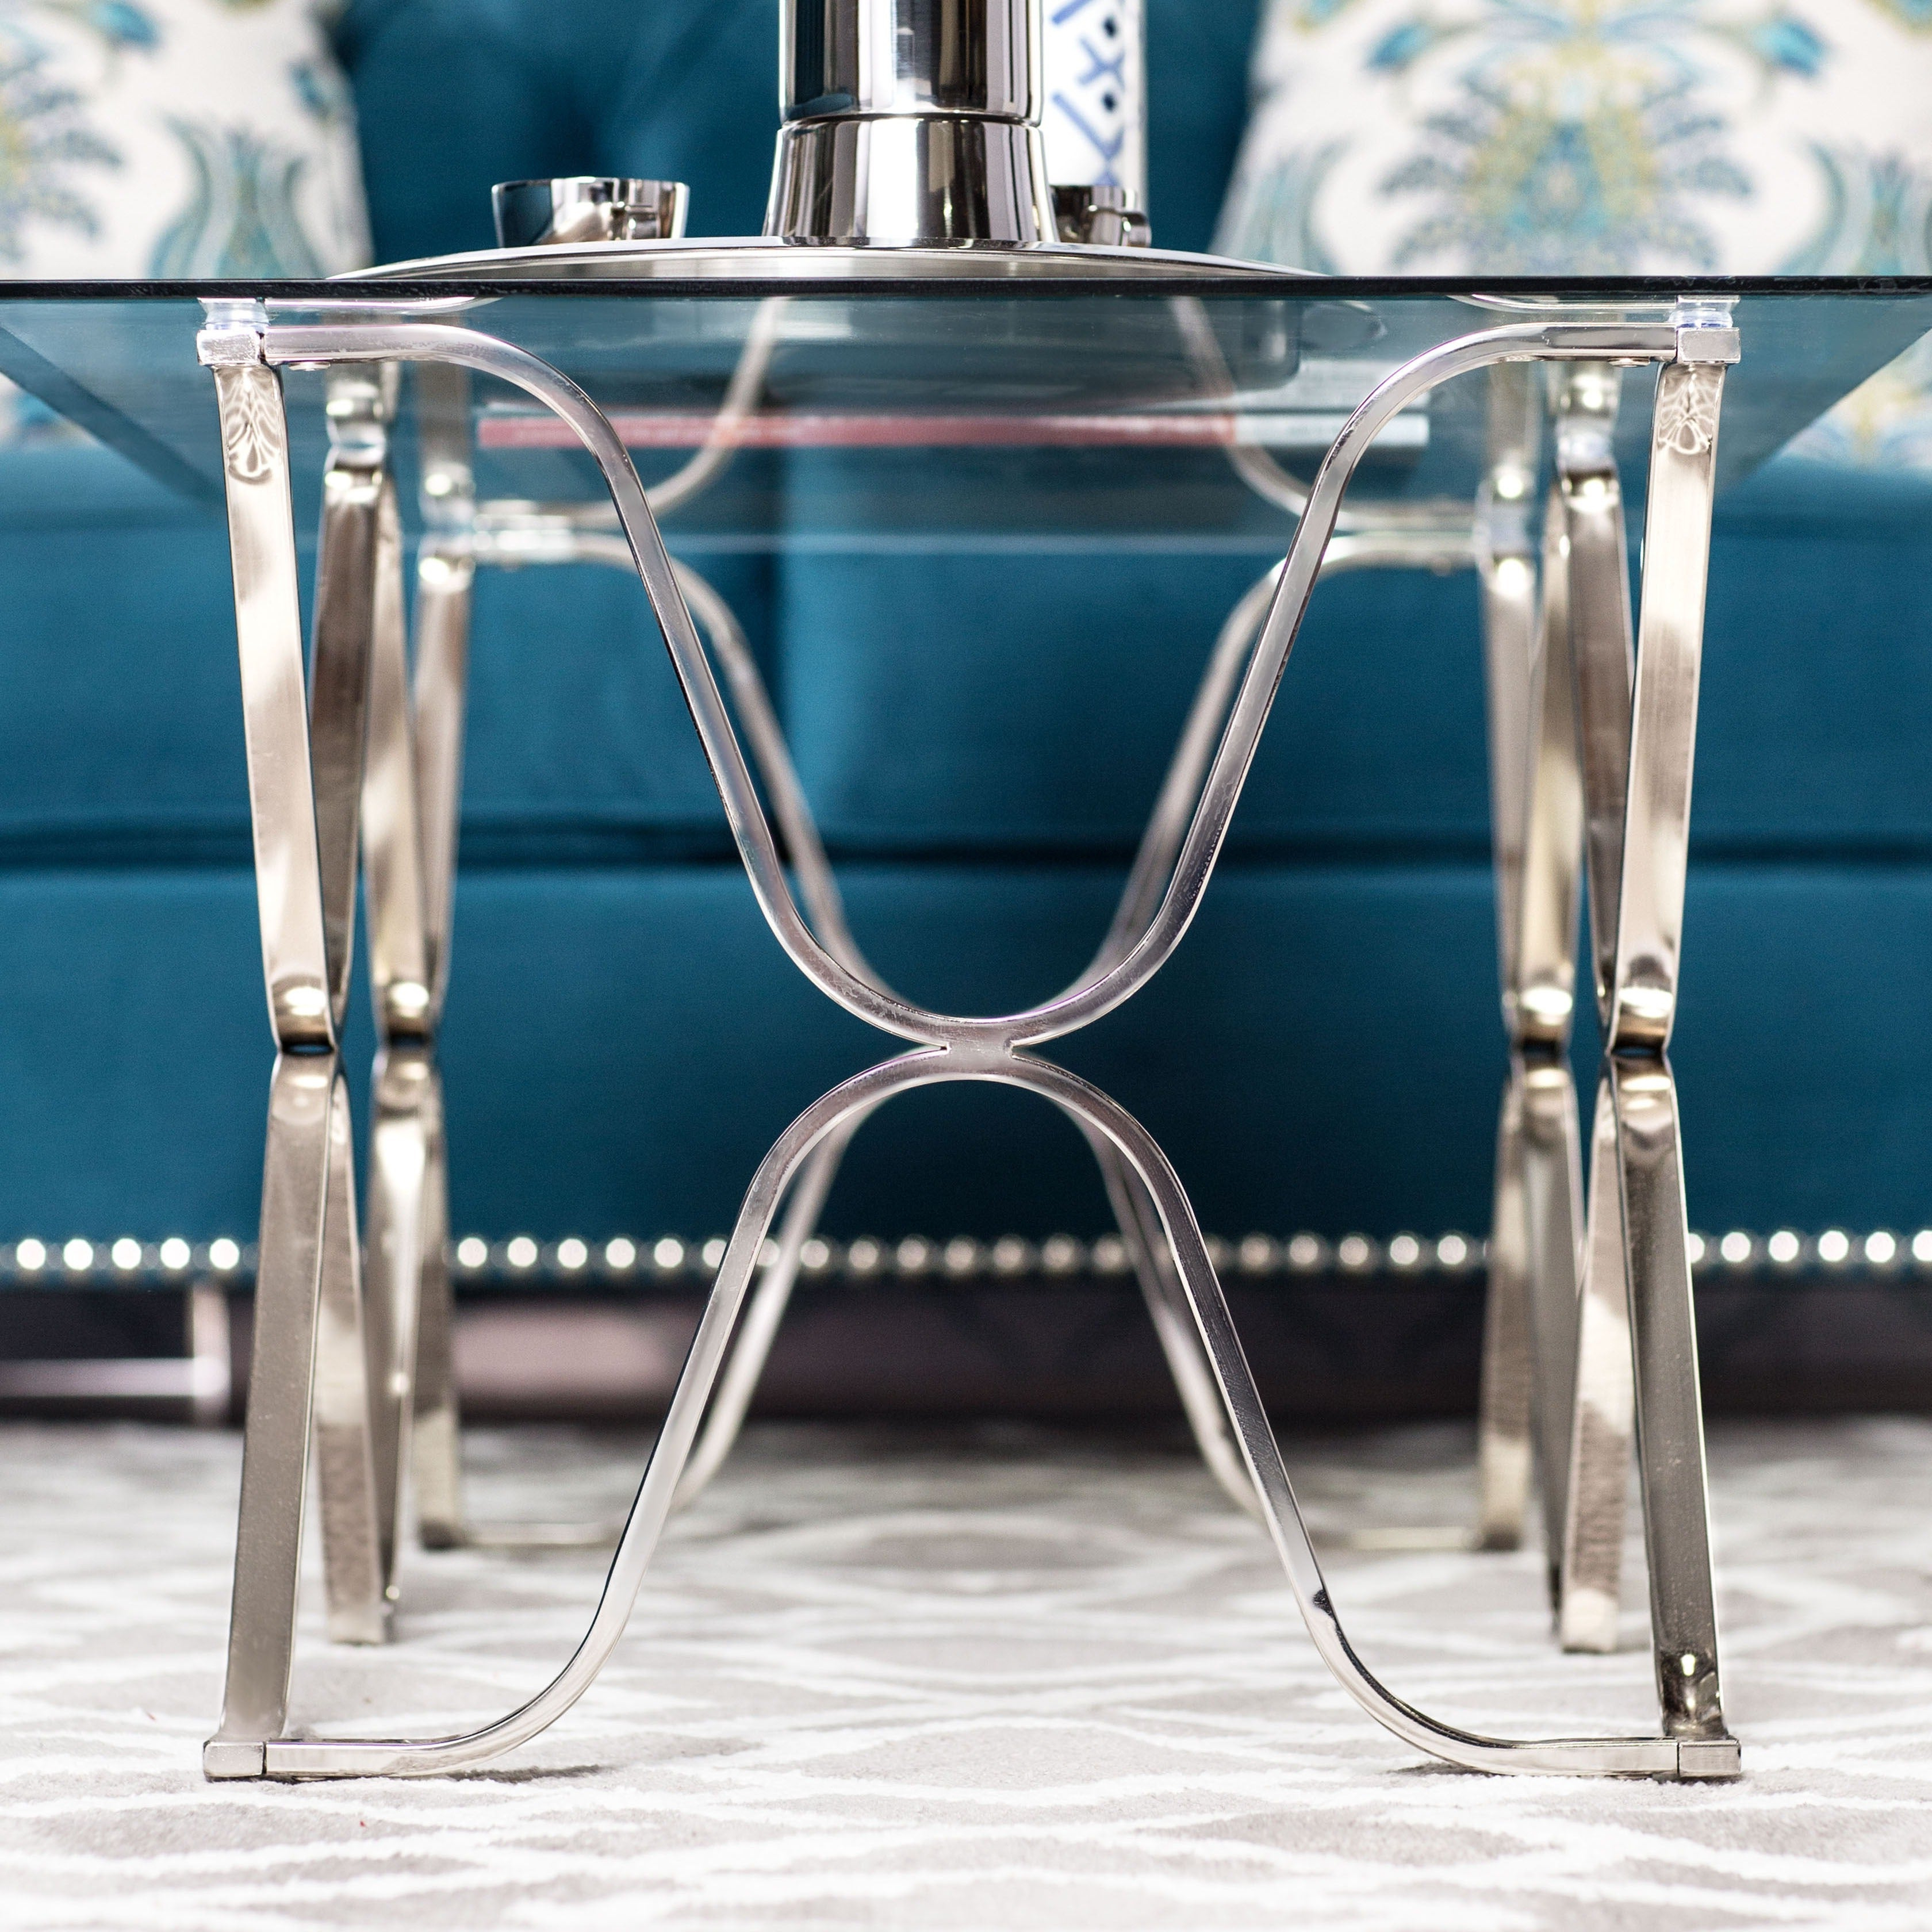 2019 Furniture Of America Tellarie Contemporary Chrome Coffee Tables Intended For Furniture Of America Tellarie Contemporary Chrome Coffee Table – Silver (View 2 of 20)